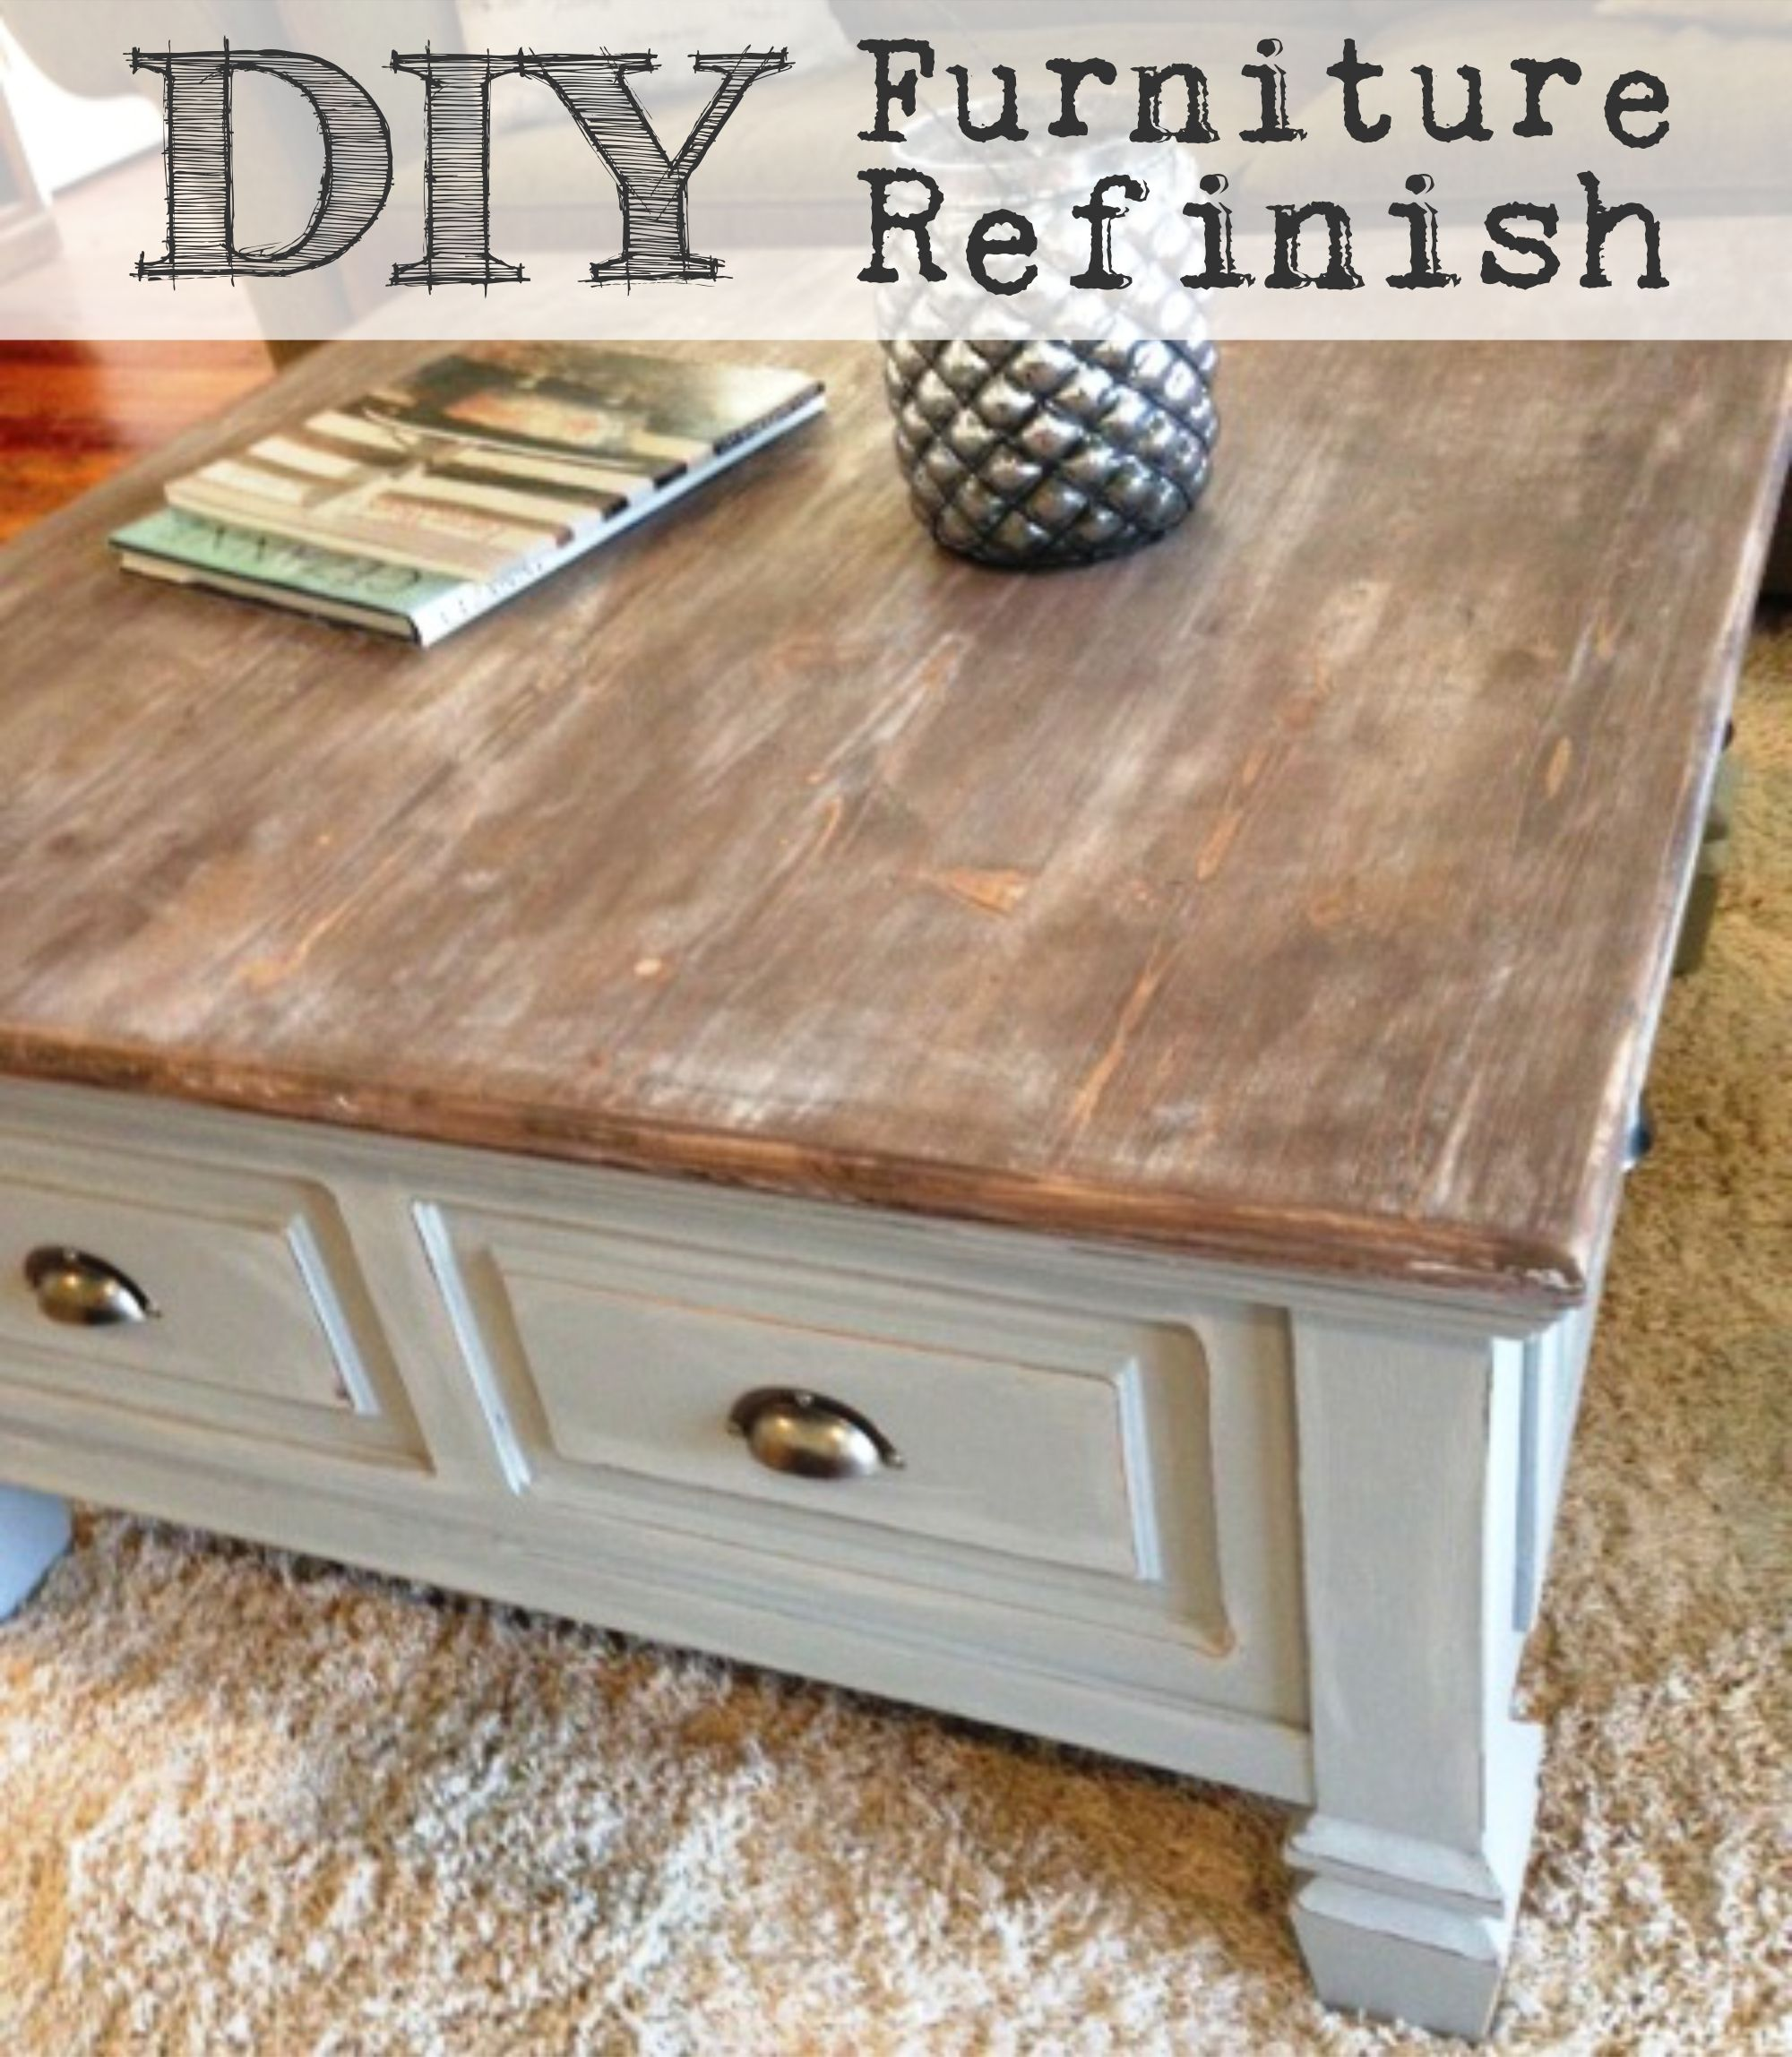 turn your plain furniture into farmhouse fabulous diy table refinish end tables refinished house projects black iron etsy mid century coffee cream wood metal rectangular patio